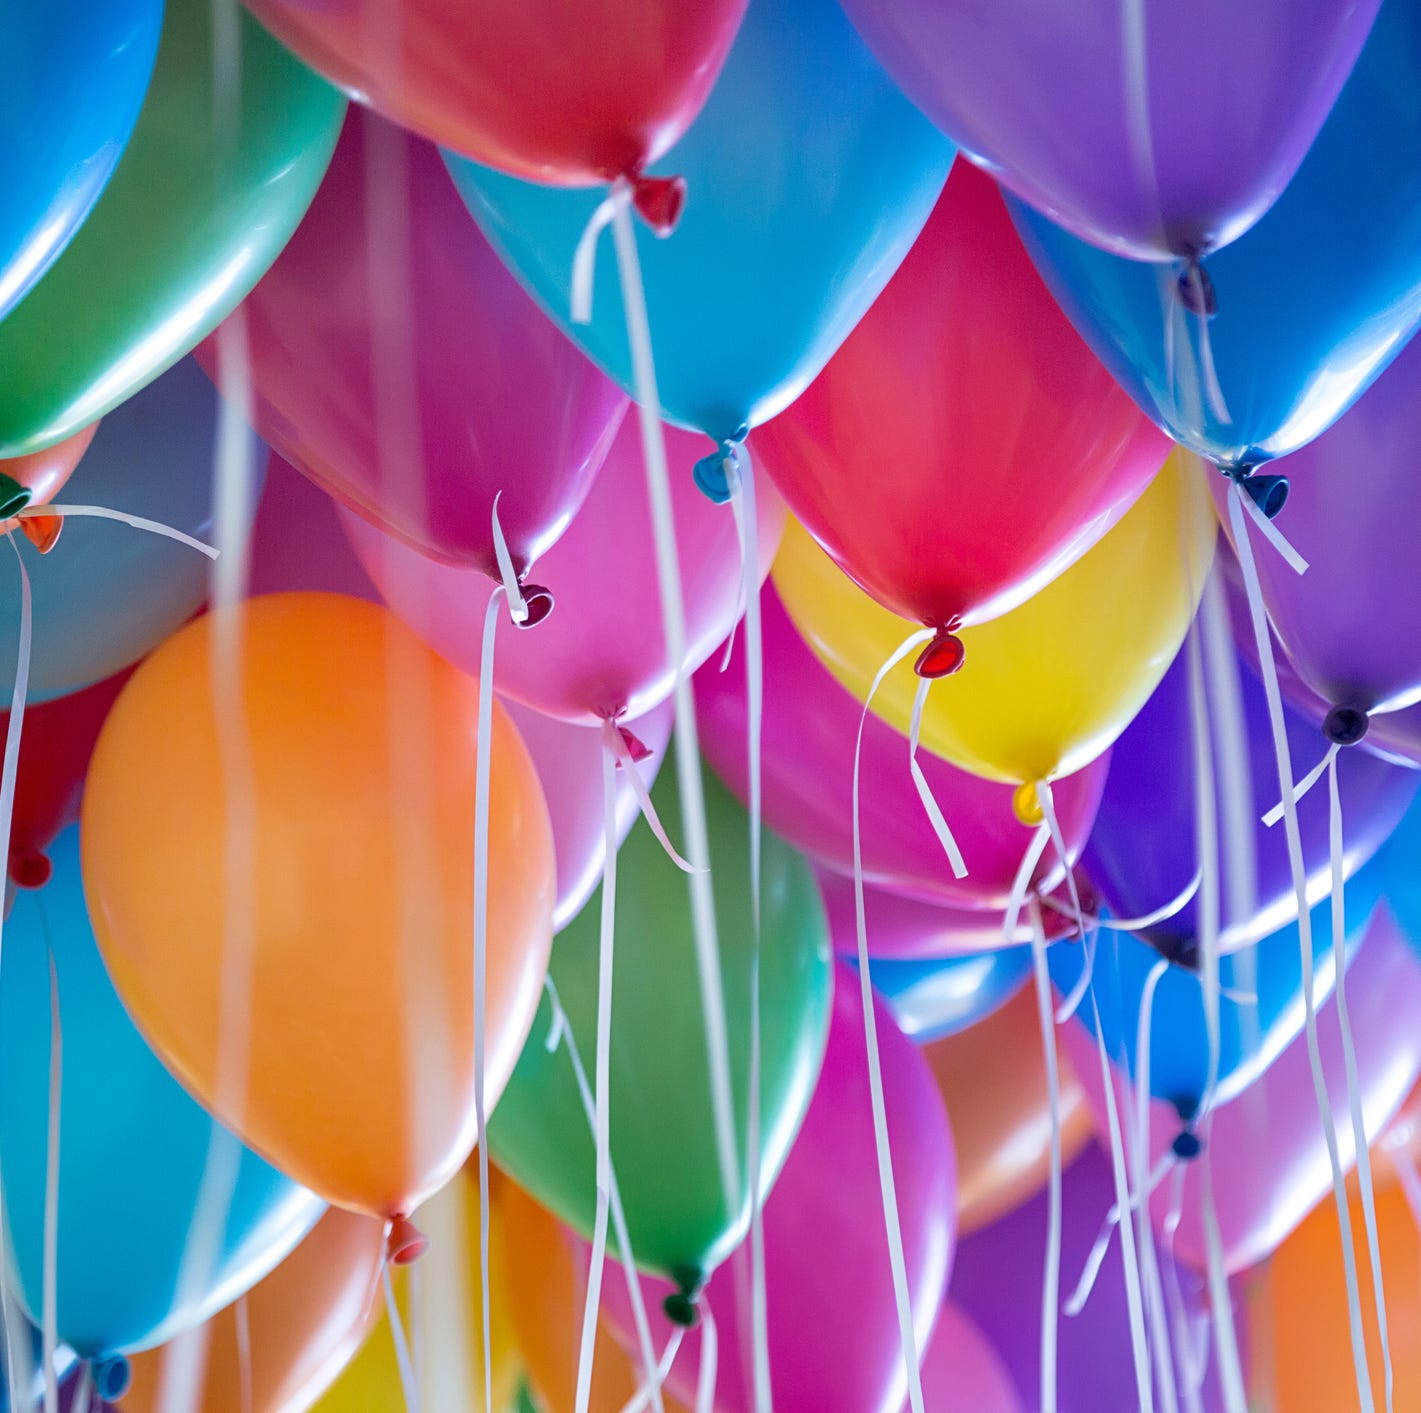 Global helium shortage is a growing threat to graduation parties and scientific research